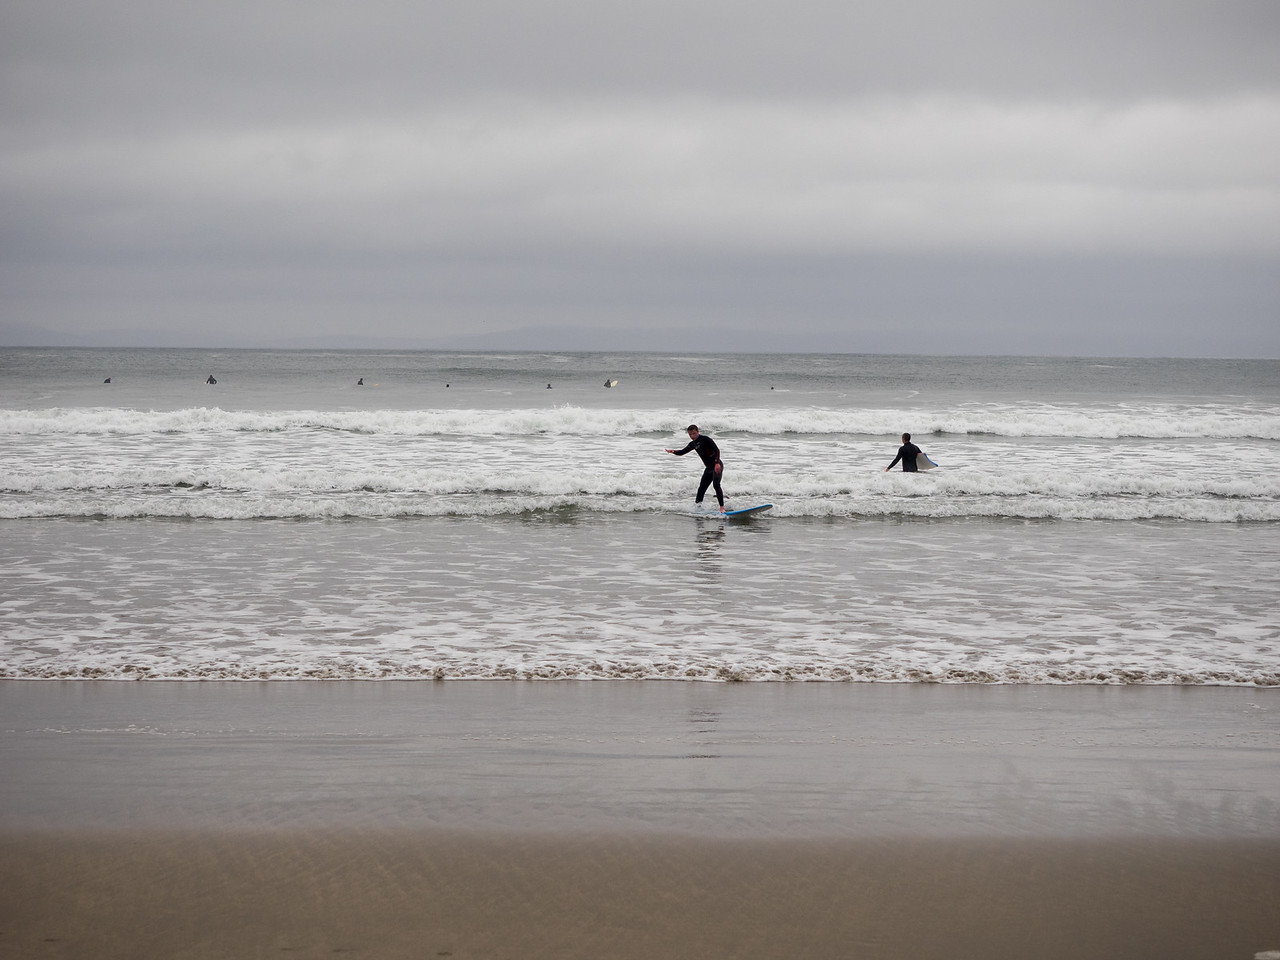 A great day for surfing at Streedagh. These guys weren't much good.